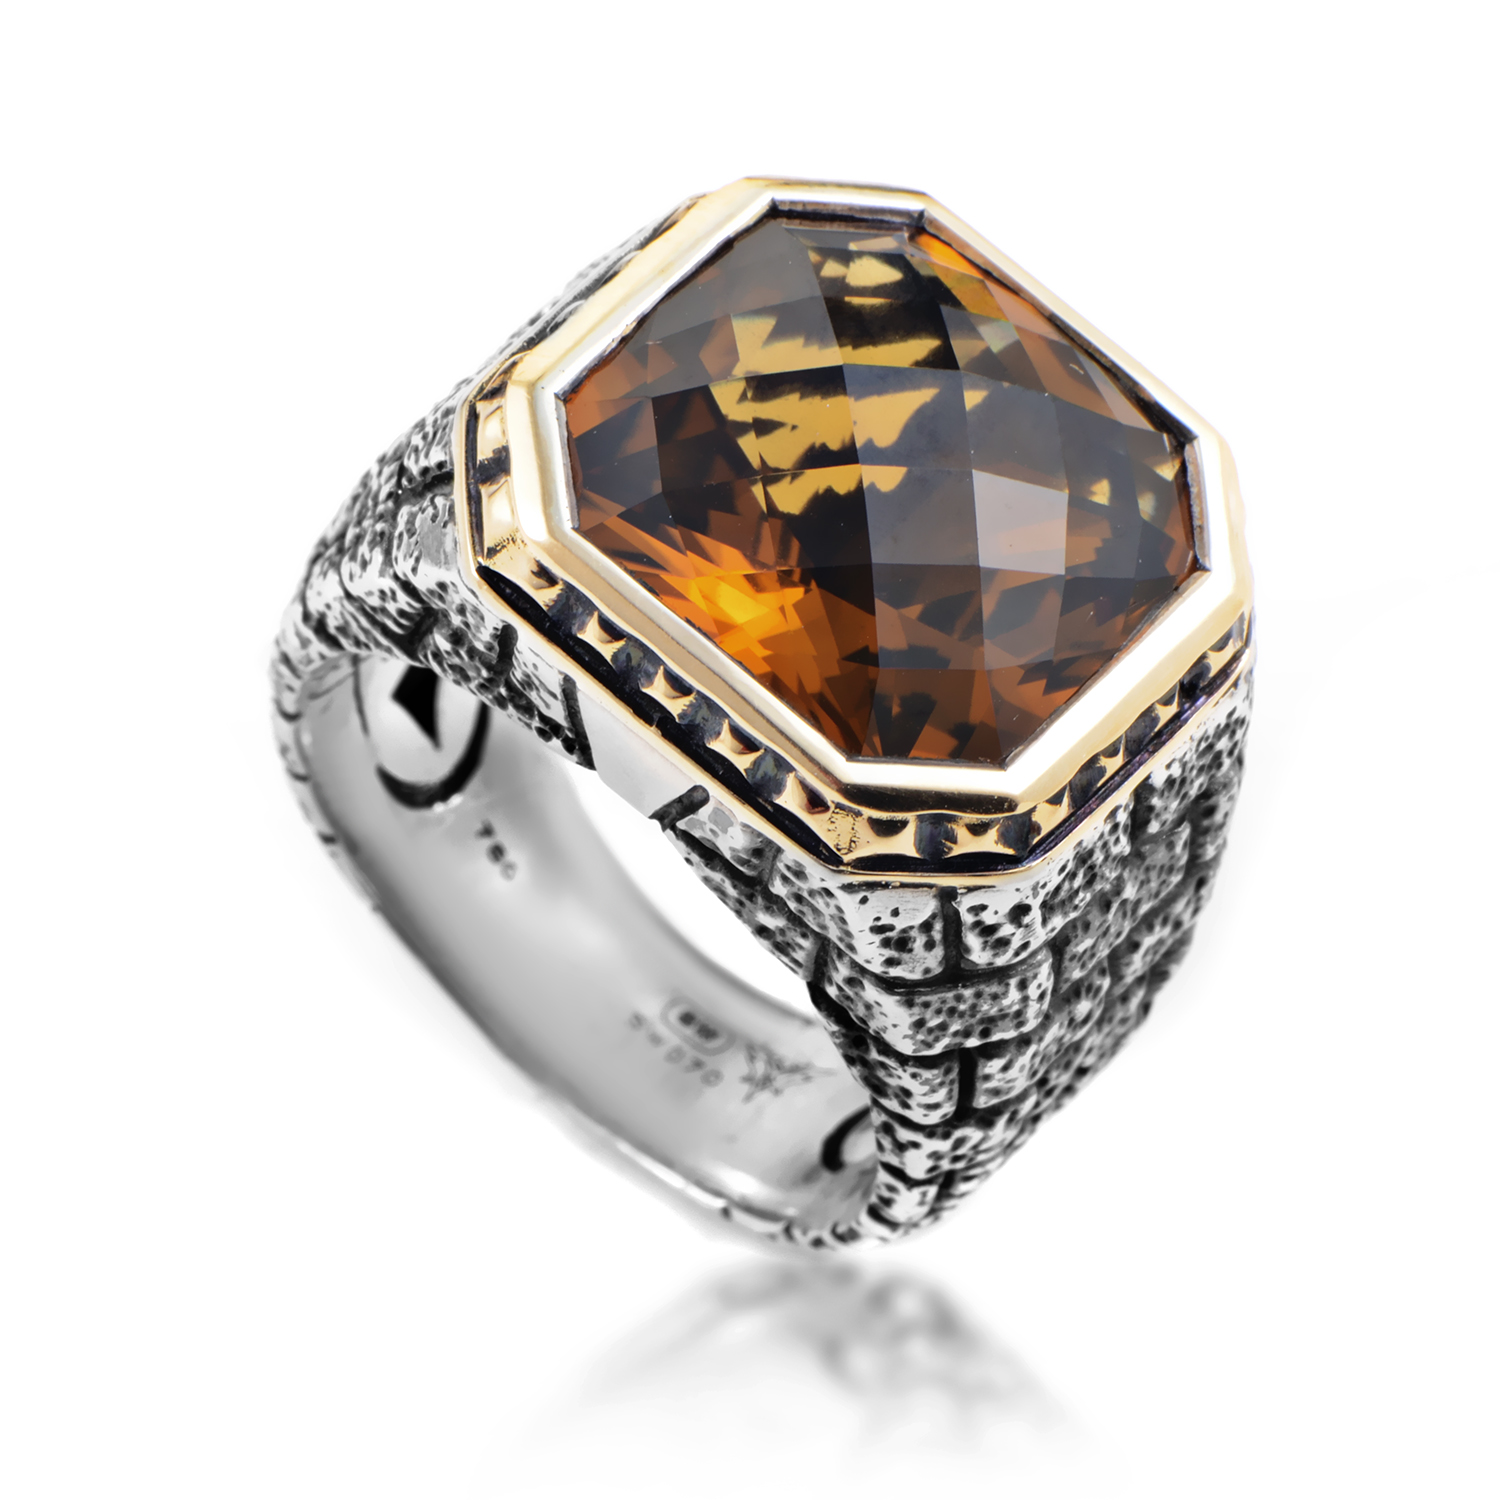 Mens Sterling Silver & 18K Yellow Gold Whiskey Quartz Ring